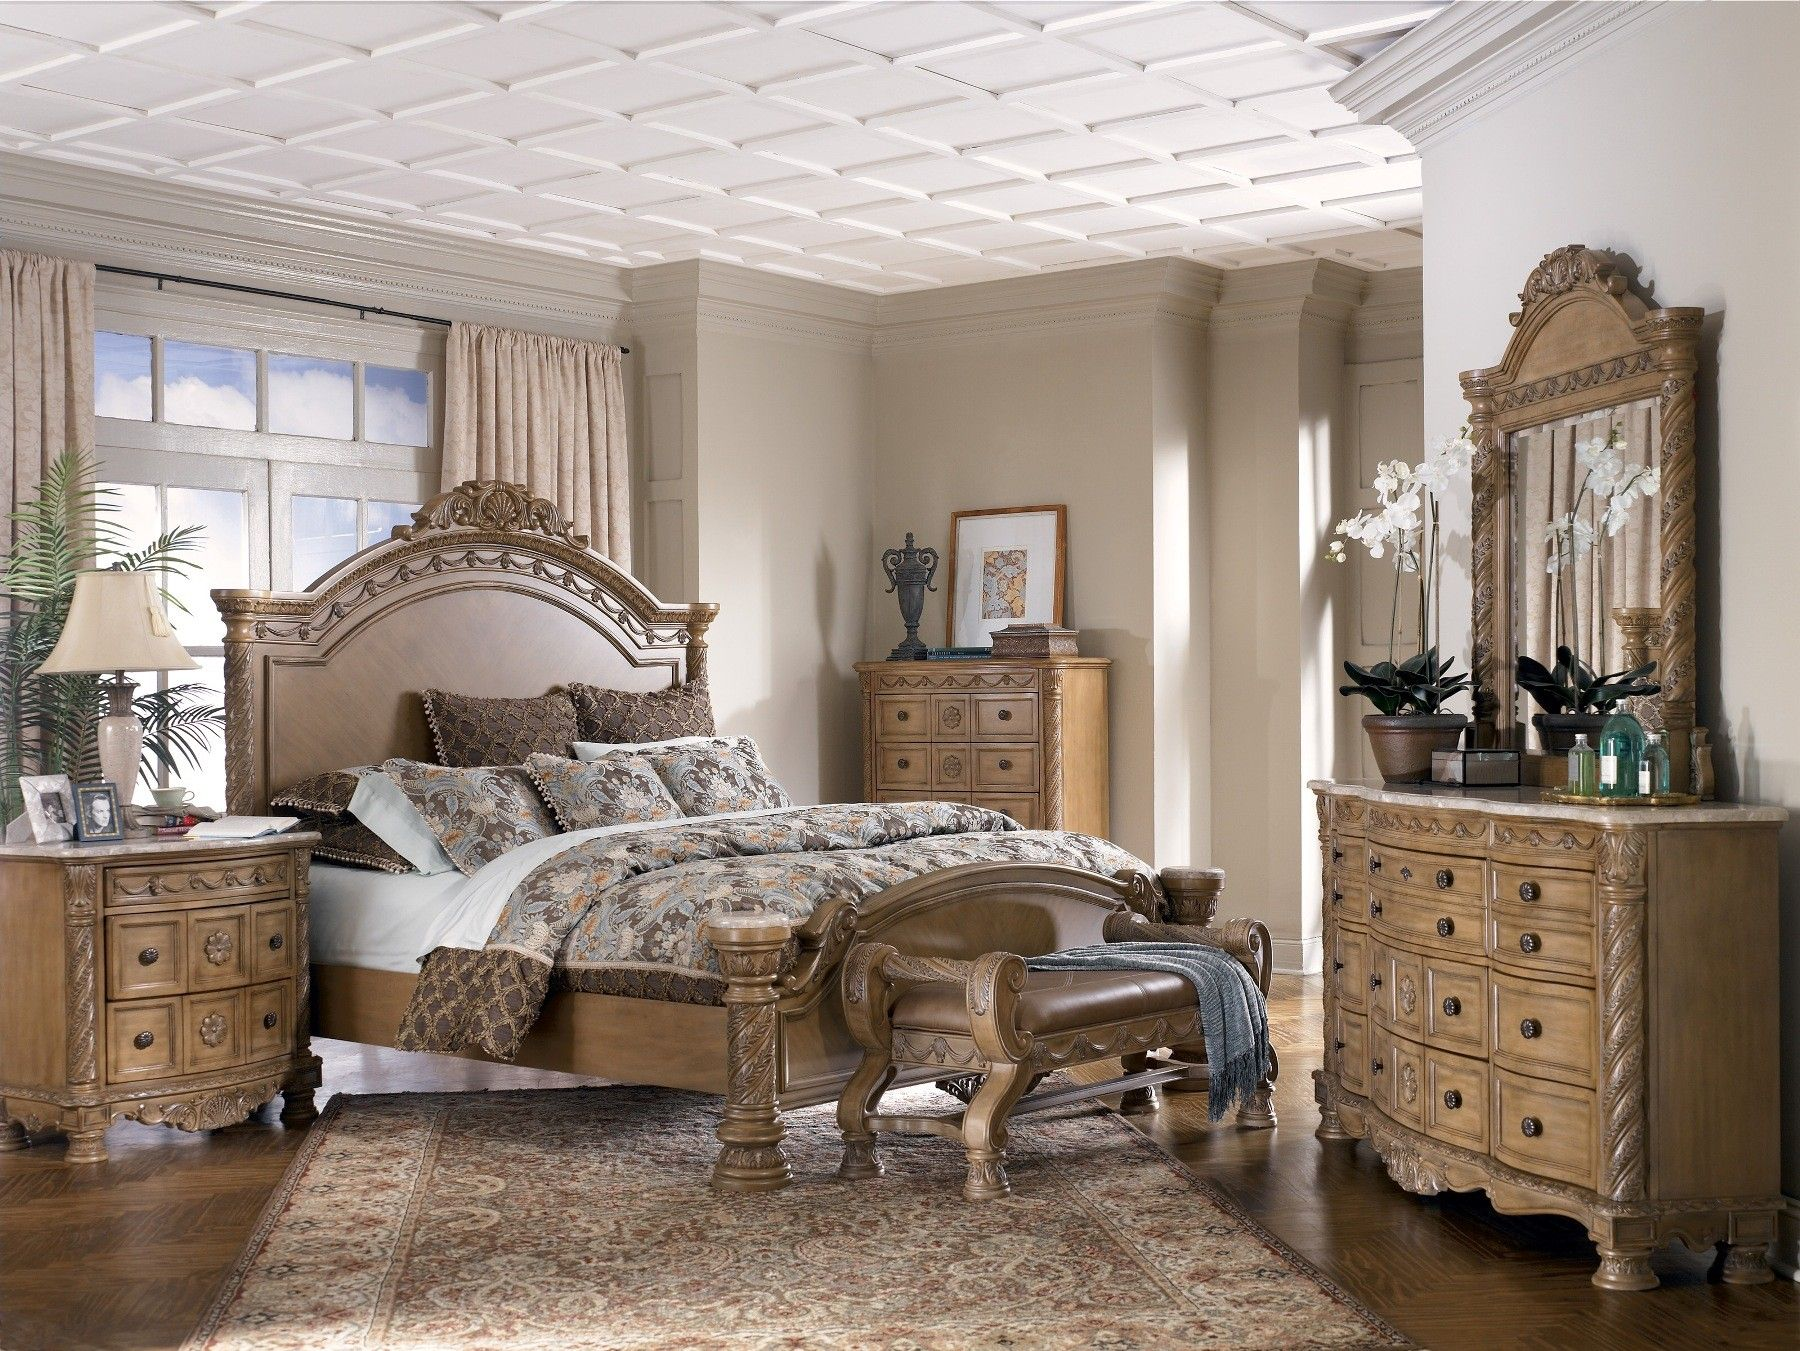 Ashley white bedroom furniture - Ashley Furniture Gallery Ashley Furniture South Coast Panel Bedroom Set Bedroom Sets Bedroom